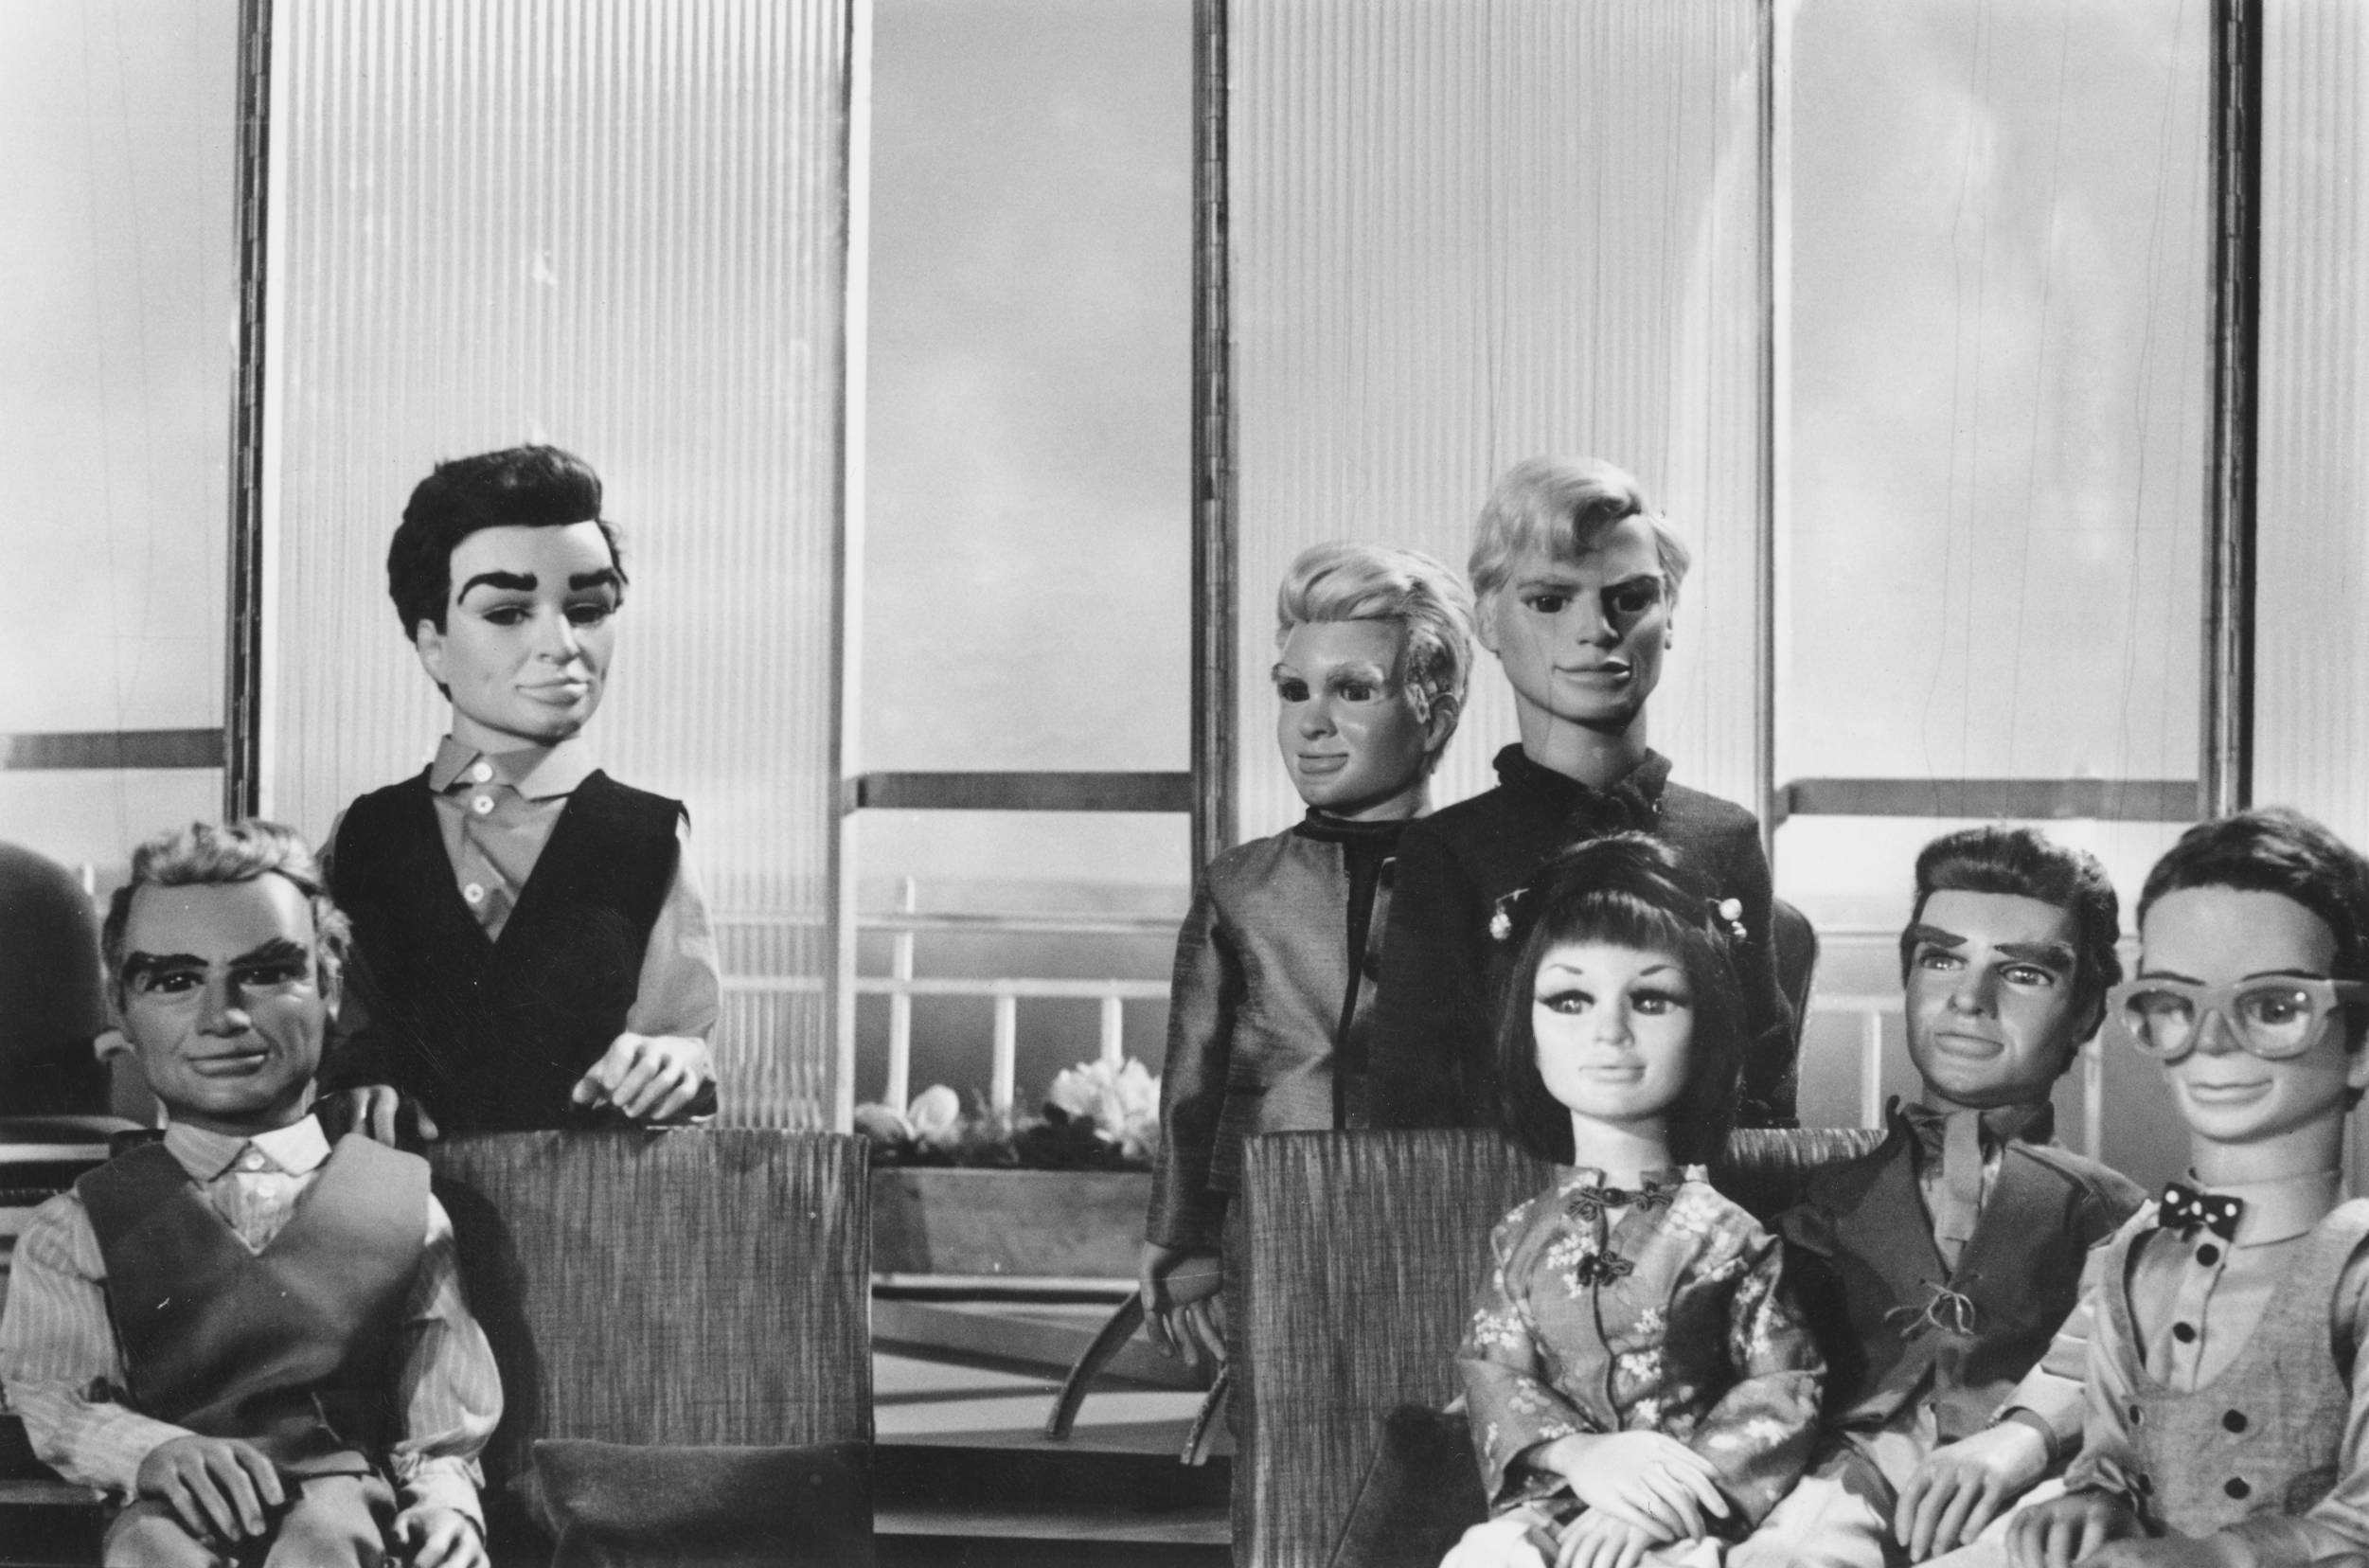 The puppet cast of Gerry and Sylvia Anderson's 'supermarionation' TV series 'Thunderbirds',